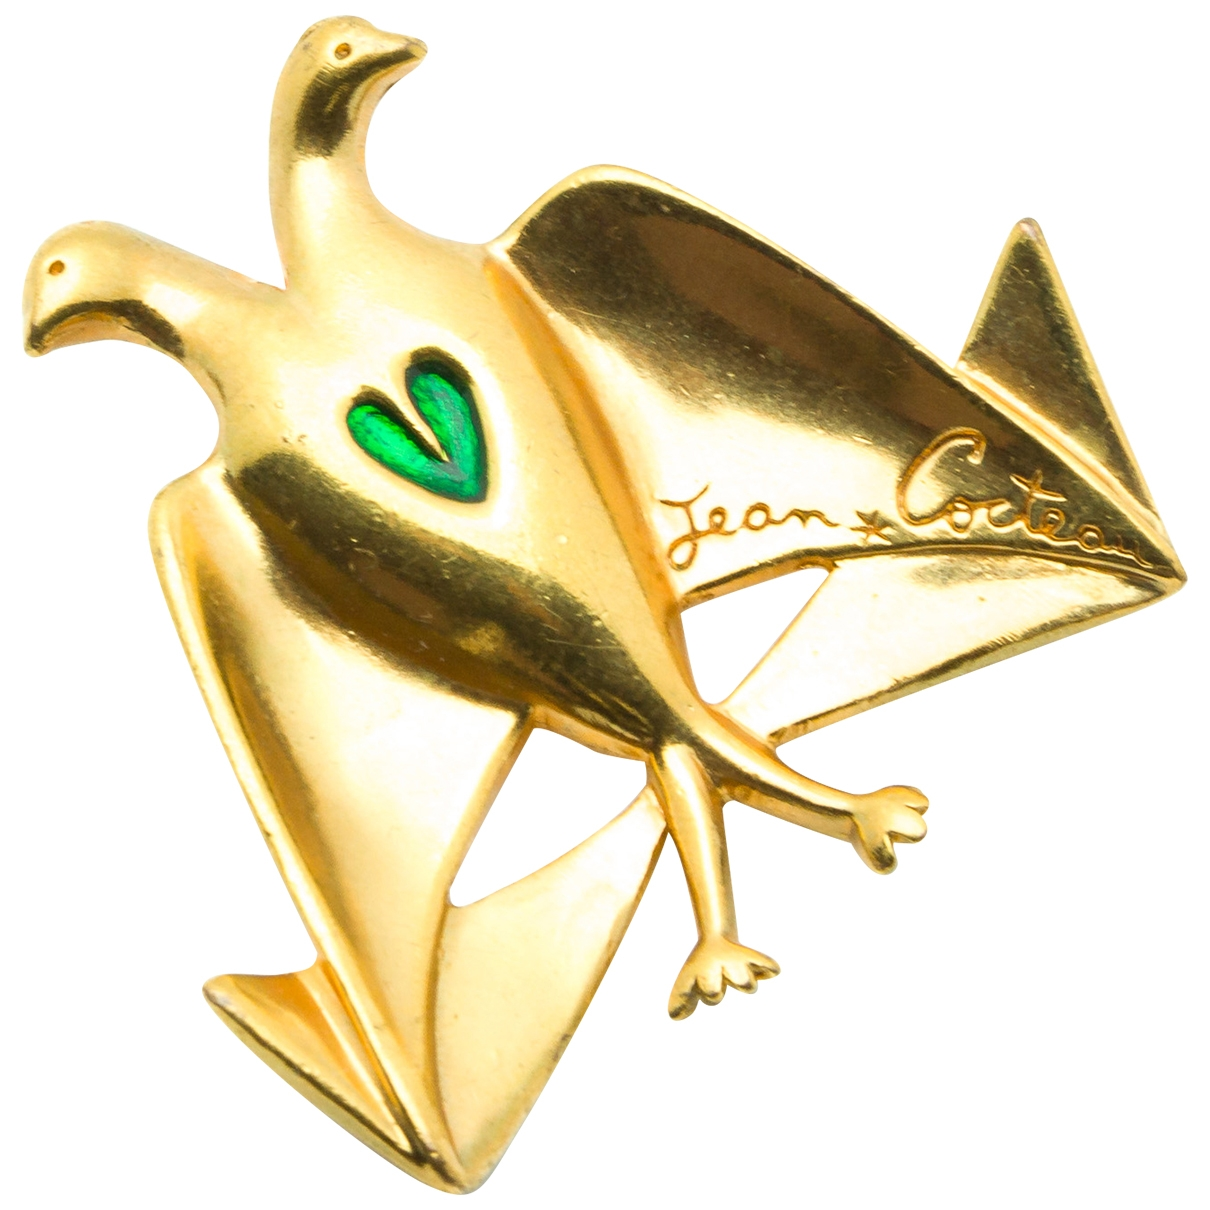 Jean Cocteau \N Gold Metal Pins & brooches for Women \N